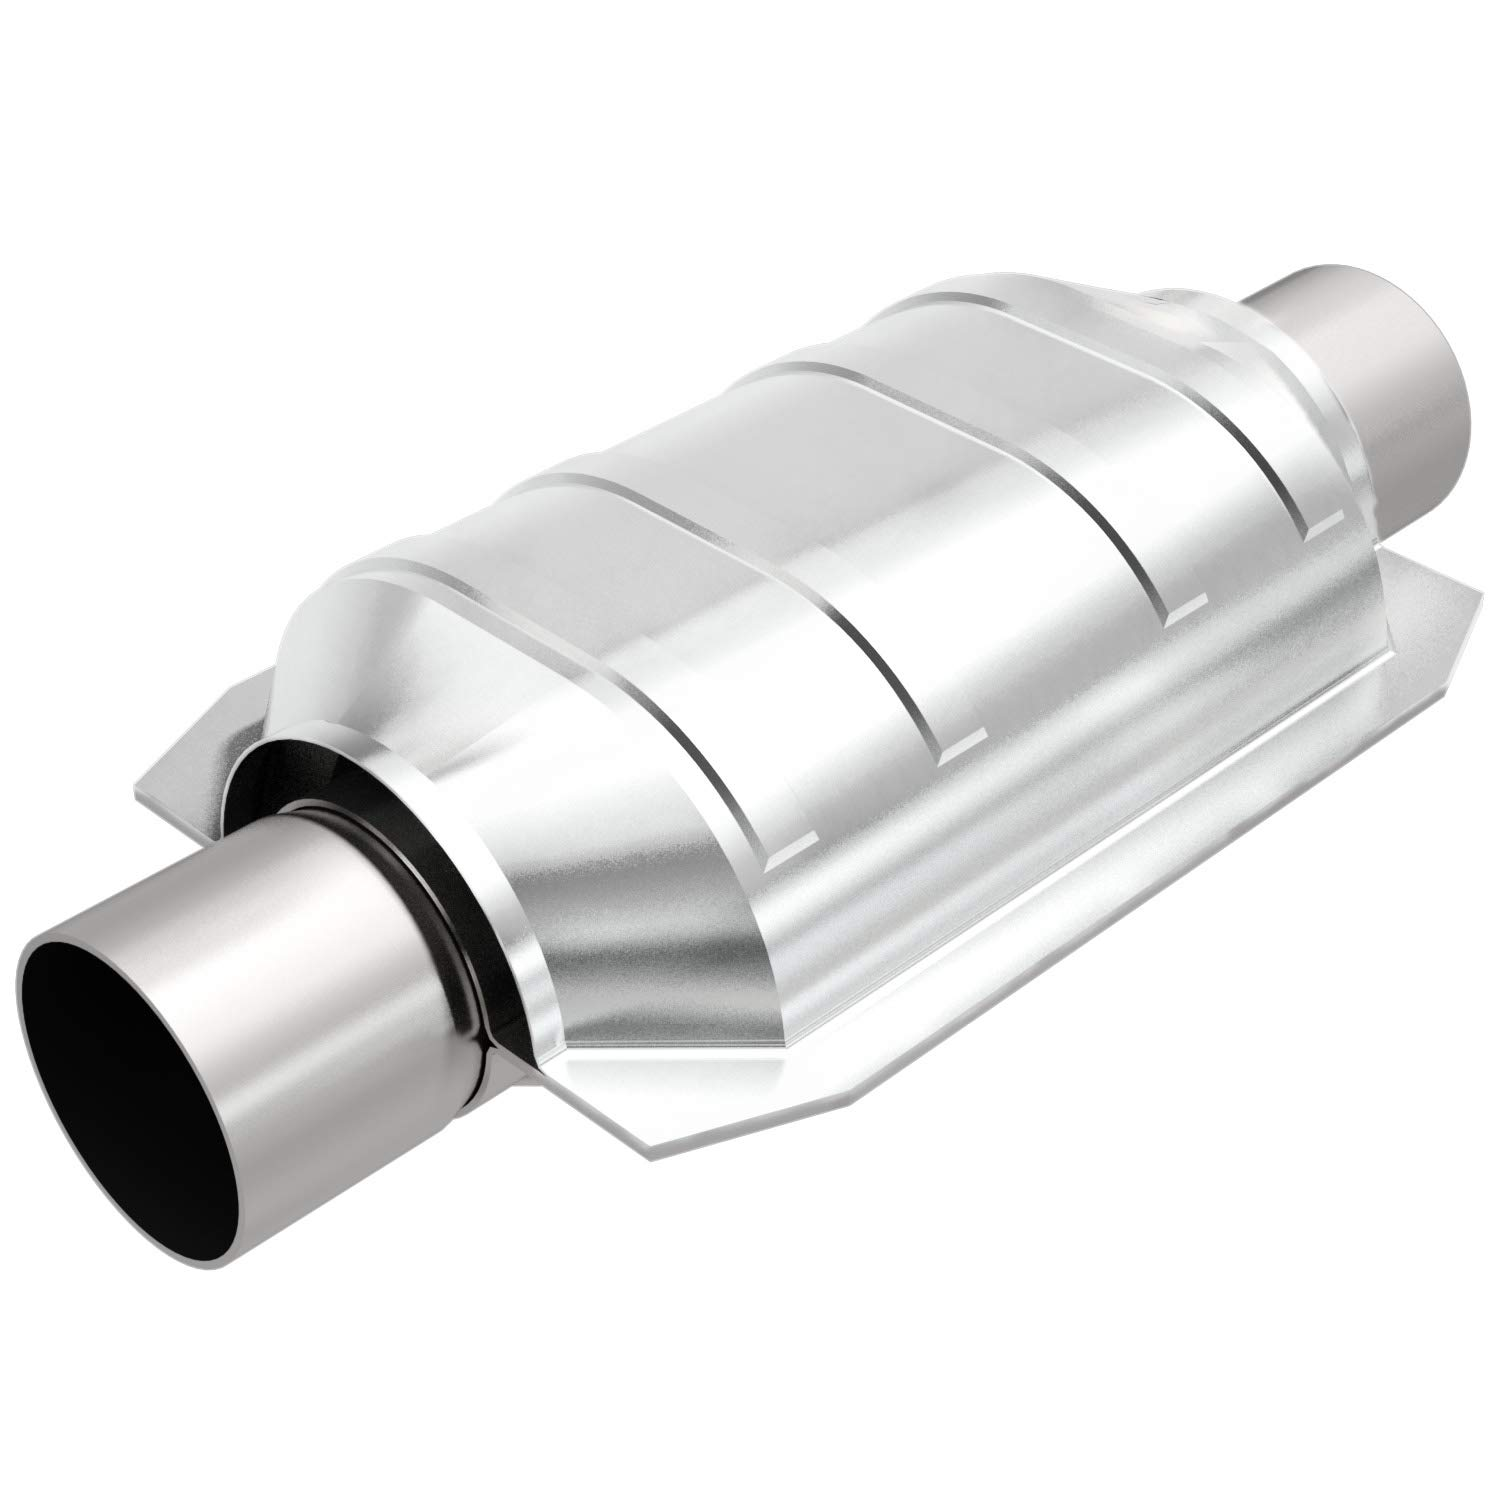 MagnaFlow 458015 Universal Catalytic Converter (CARB Compliant) MagnaFlow Exhaust Products